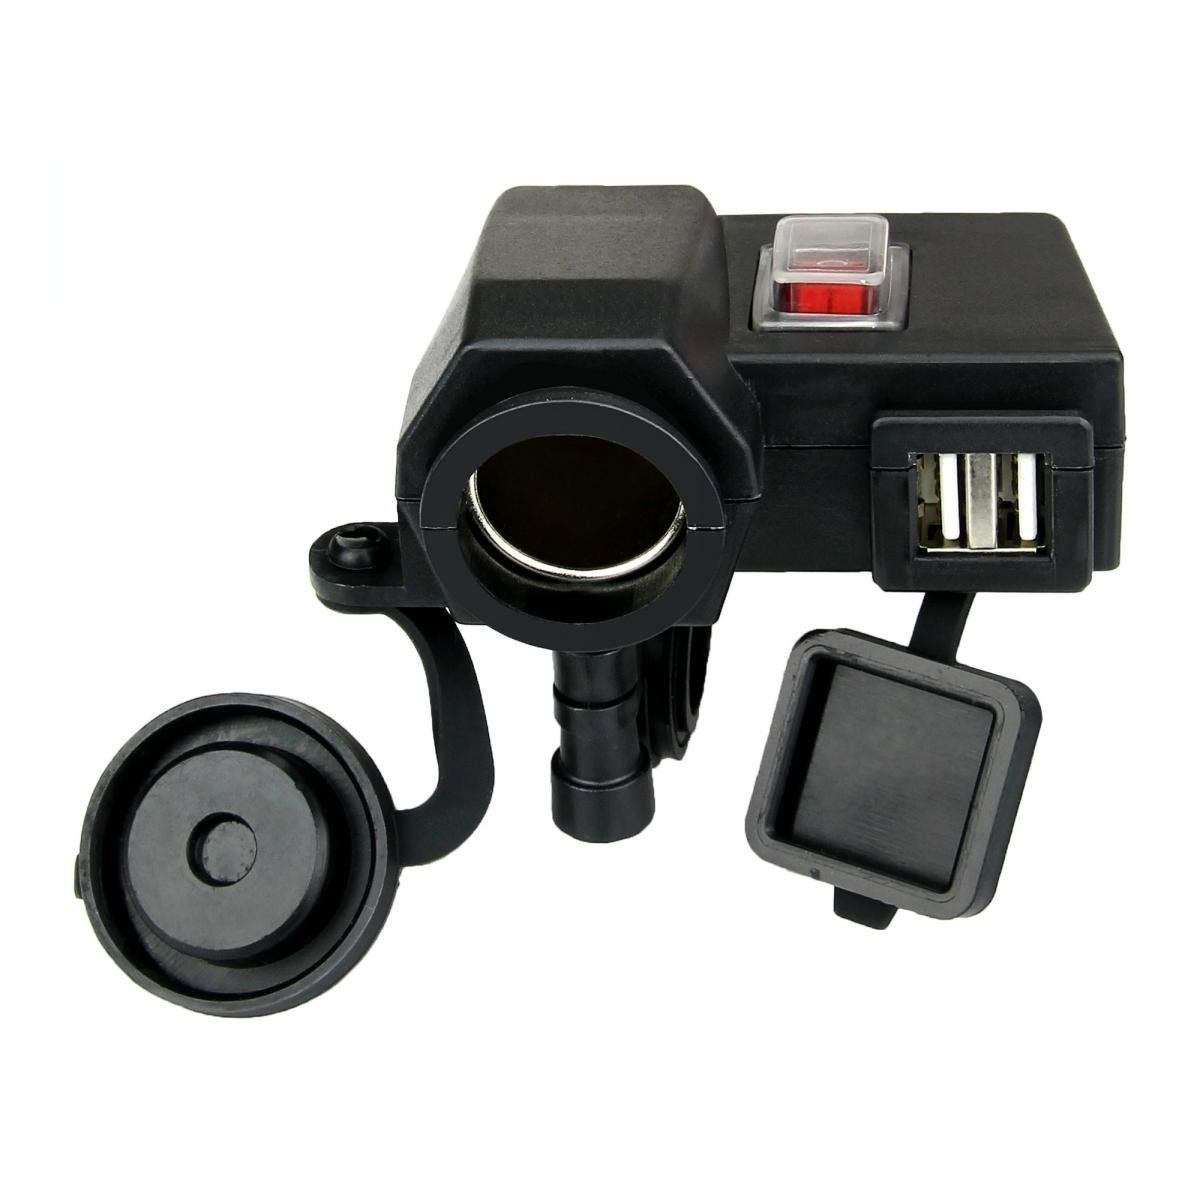 AUTO Waterproof 5V/2.1A Dual USB Output Motorcycle Handlebar Clamp Power Adapter Charger USB Charging System